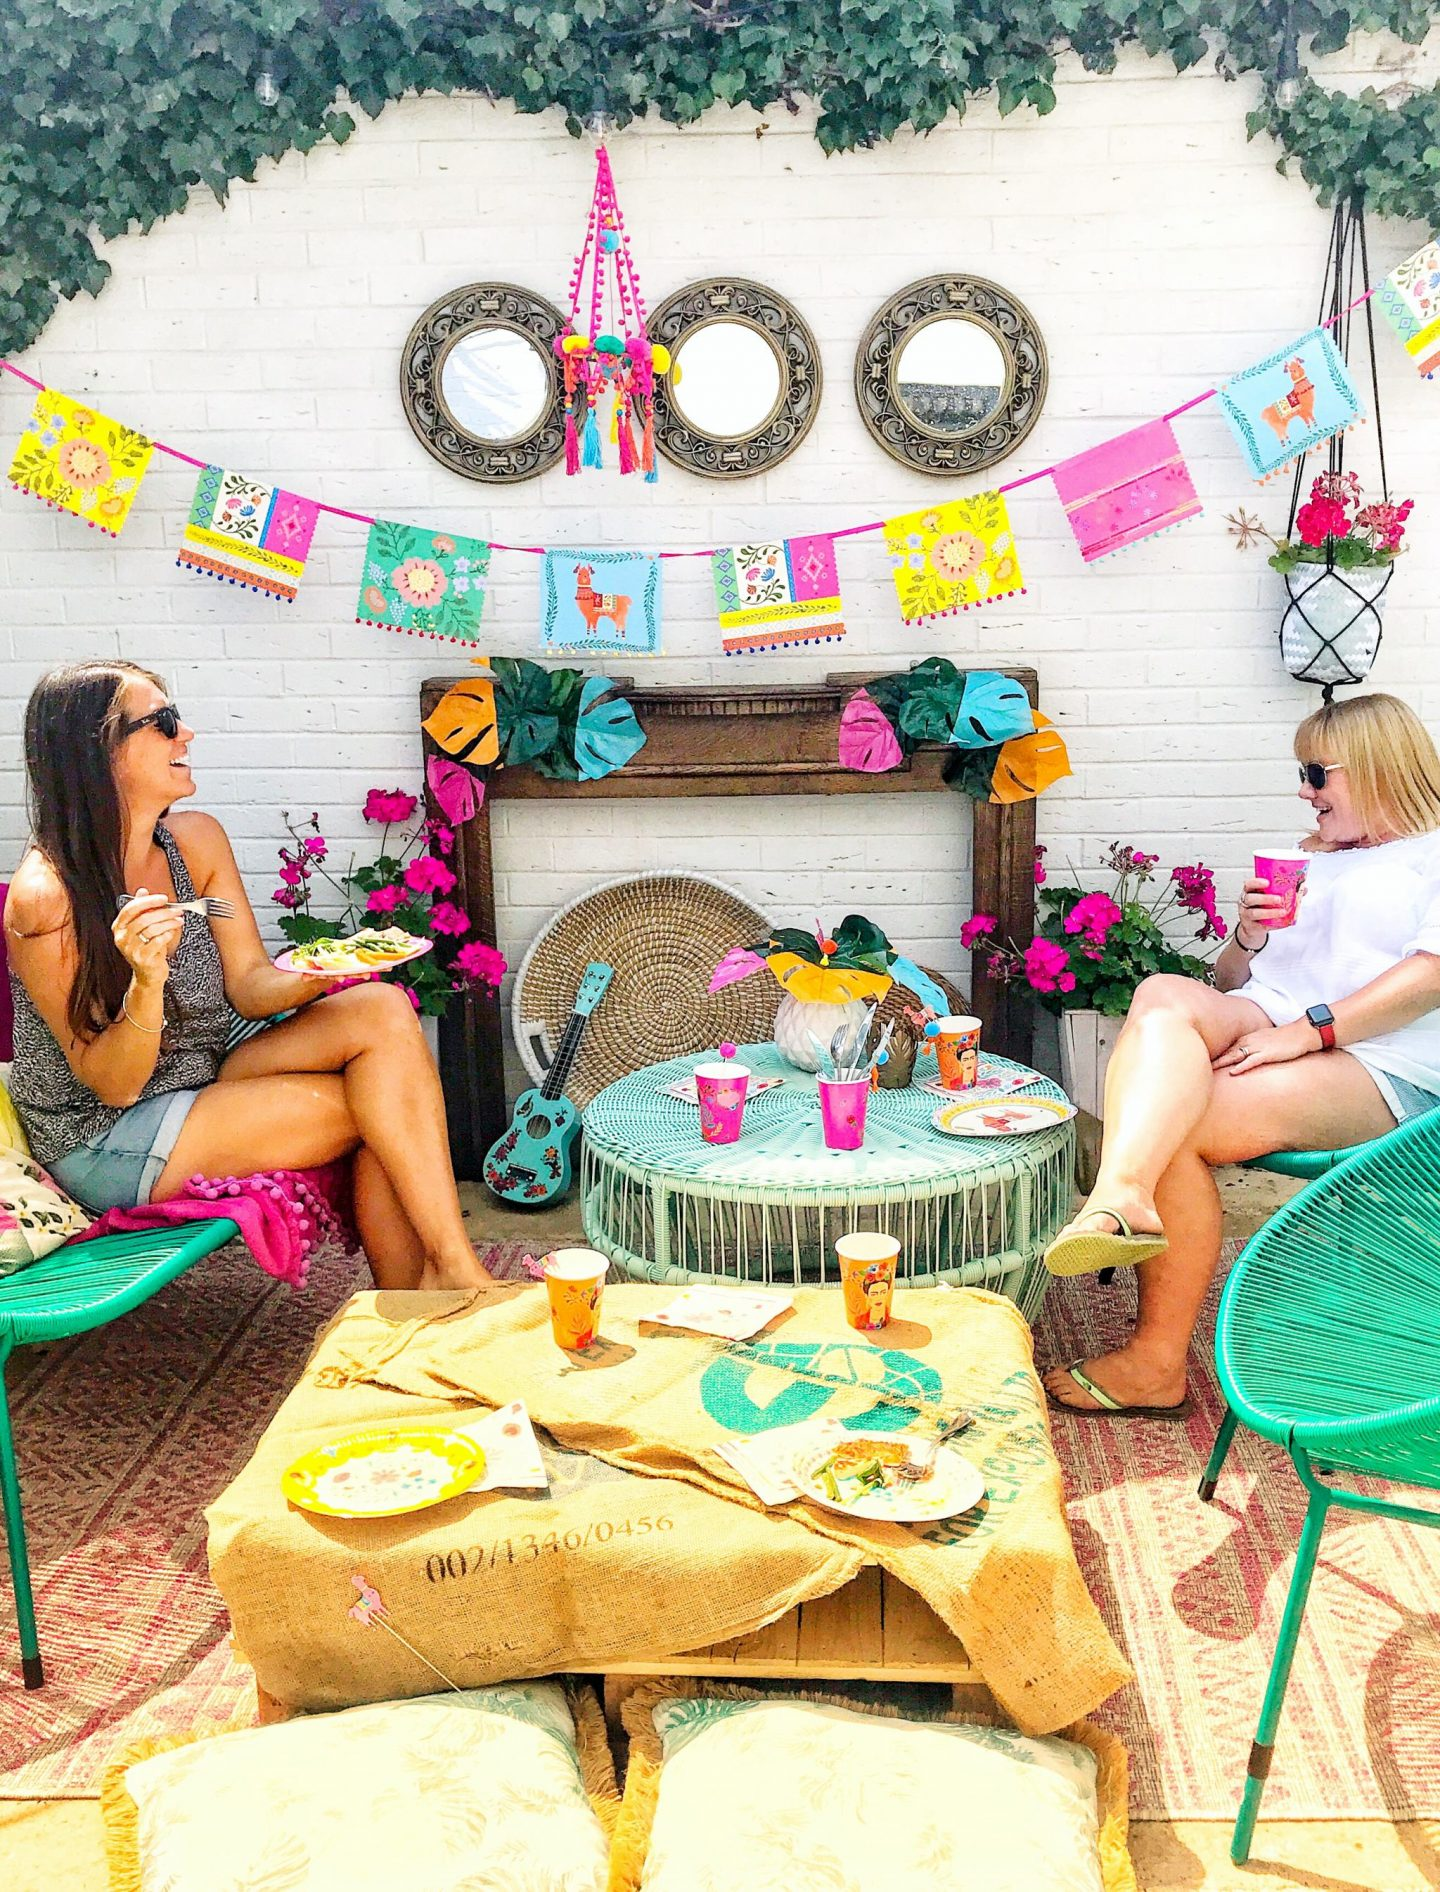 HOW TO HOST A SOCIAL DISTANCING GARDEN PARTY